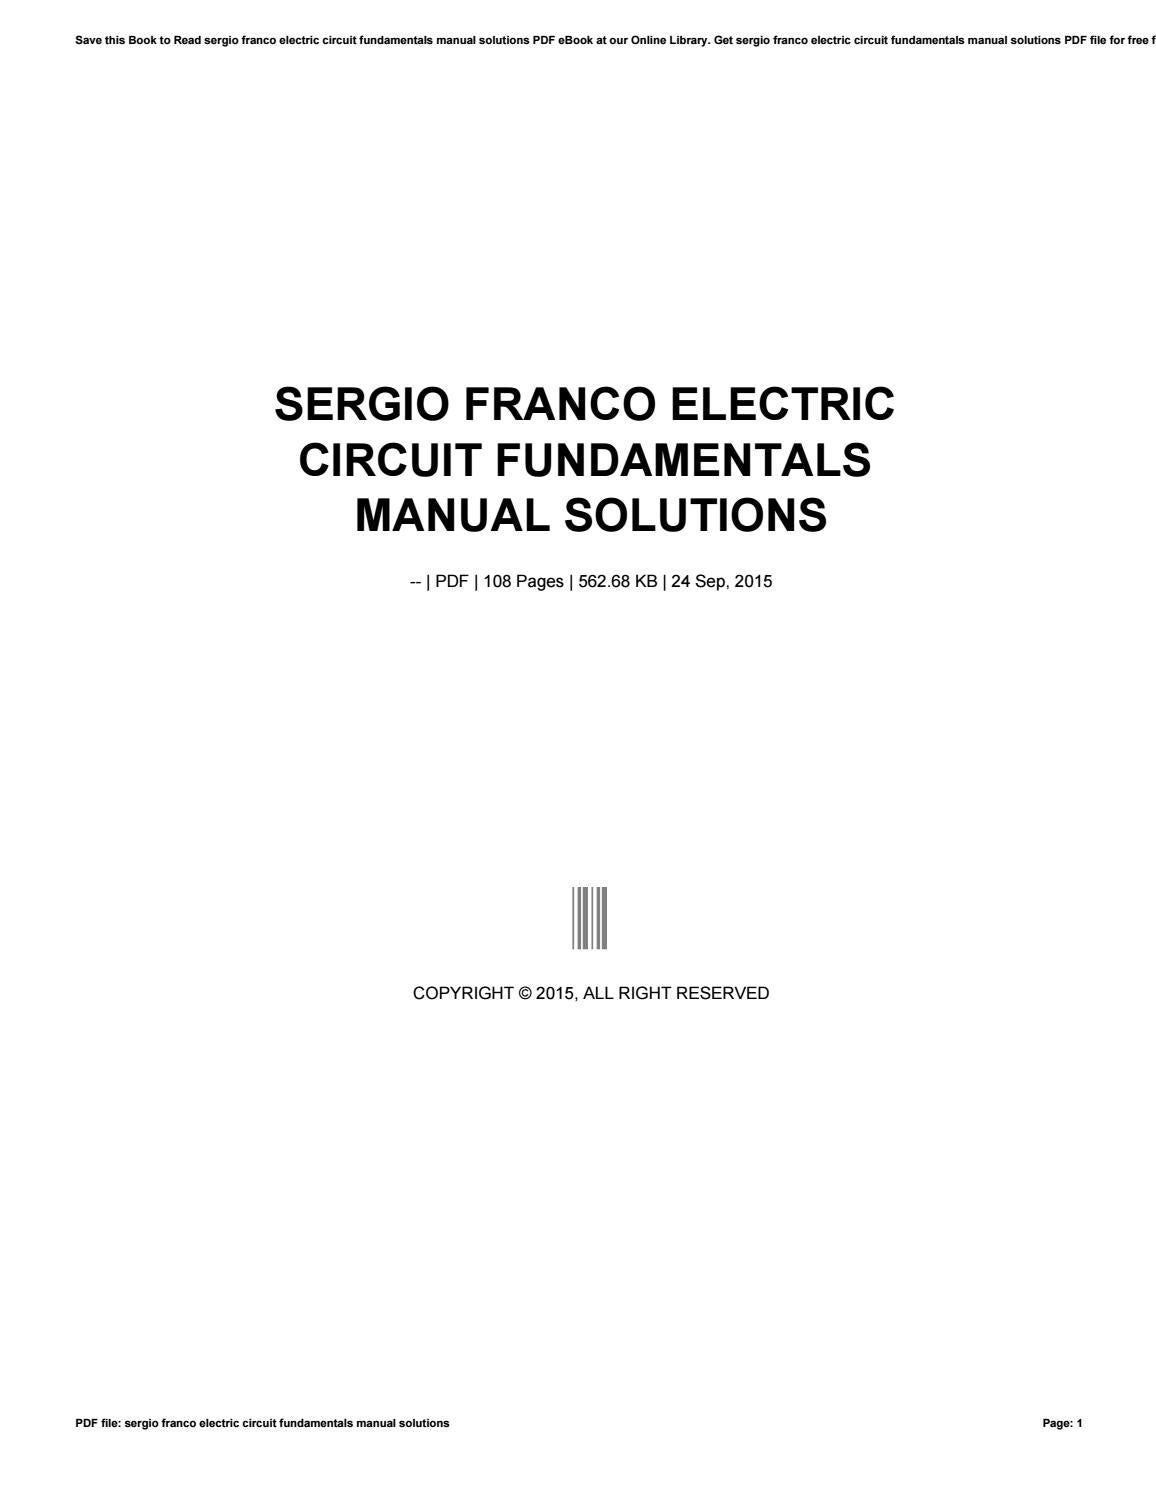 pspice manual for electric circuits fundamentals pdf